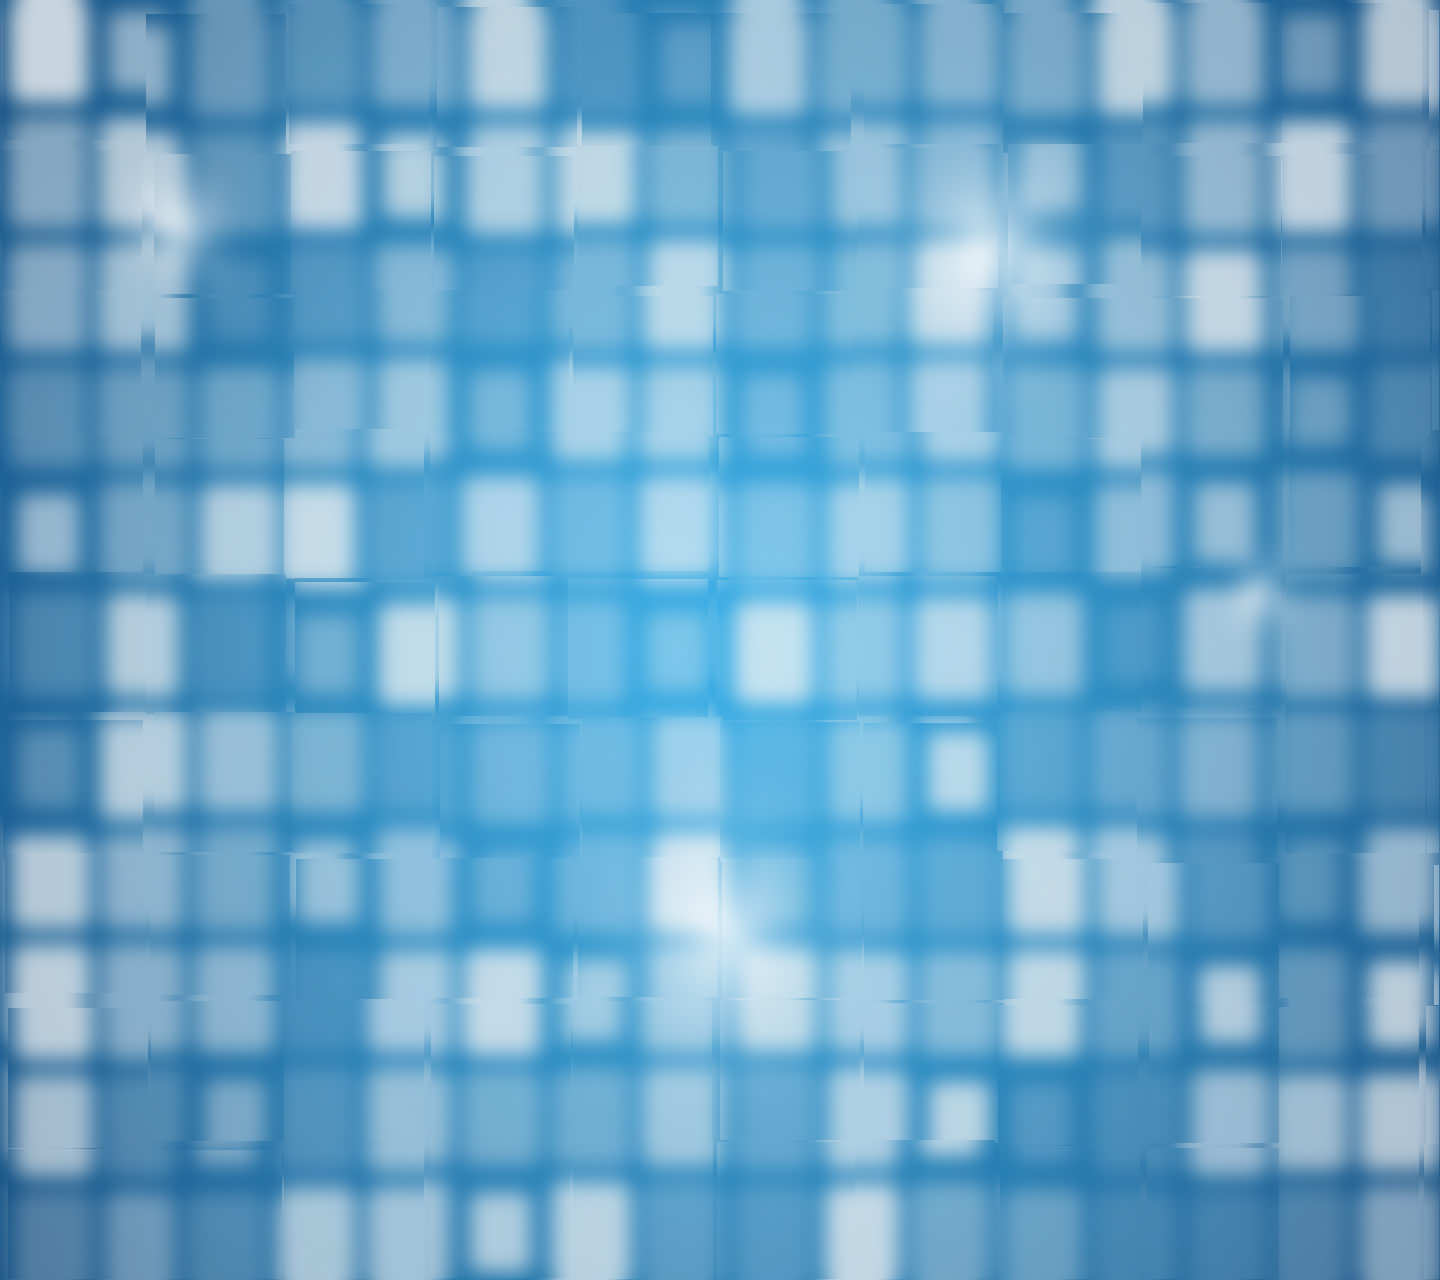 Blurred Square Checker Wallpaper